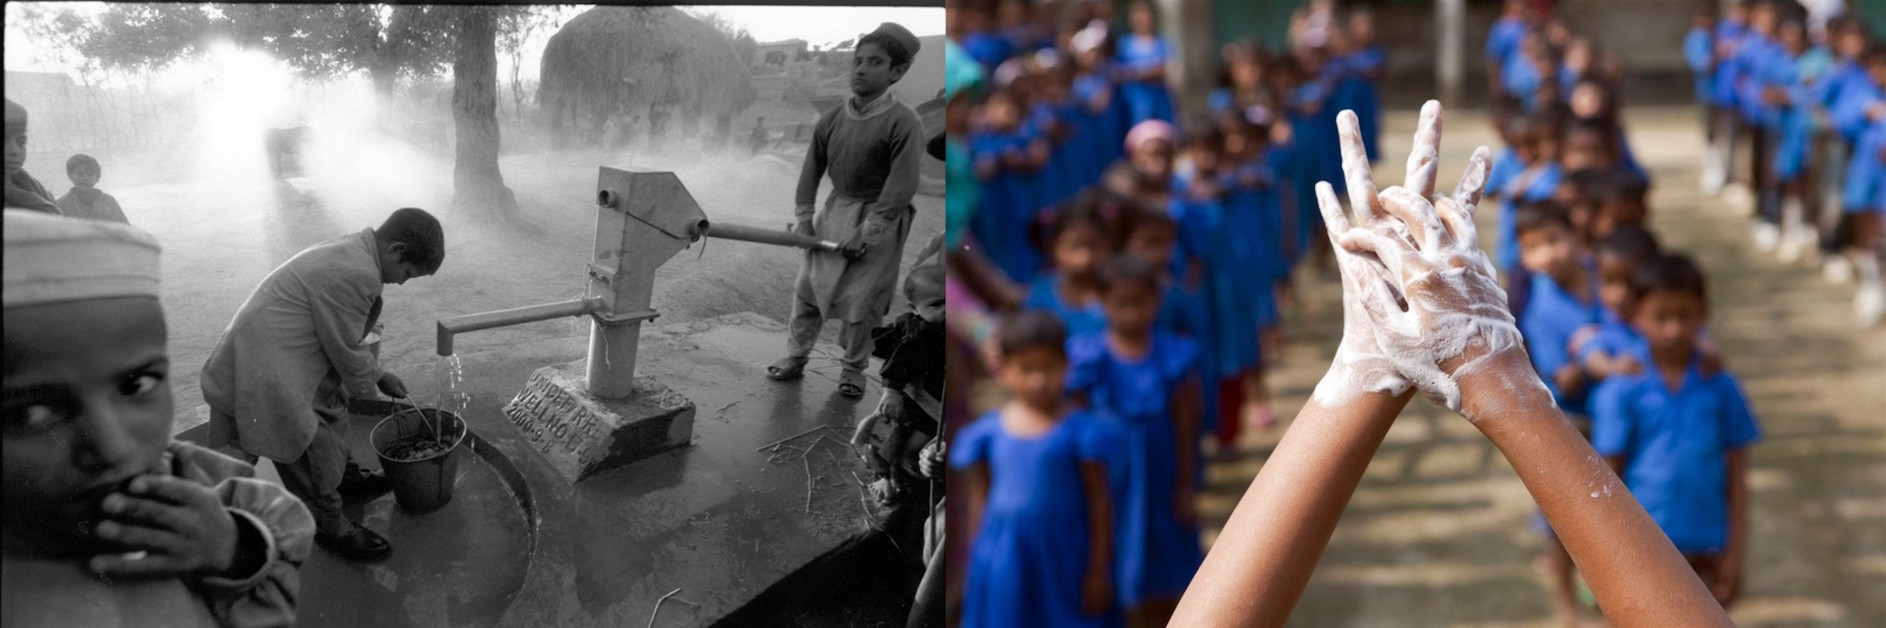 (Left) In 2000 in Afghanistan, boys collect water at a handpump on the outskirts of the town of Laghman. (Right) In 2012, a School Brigade member demonstrates proper hand washing techniques during assembly in Bangladesh.